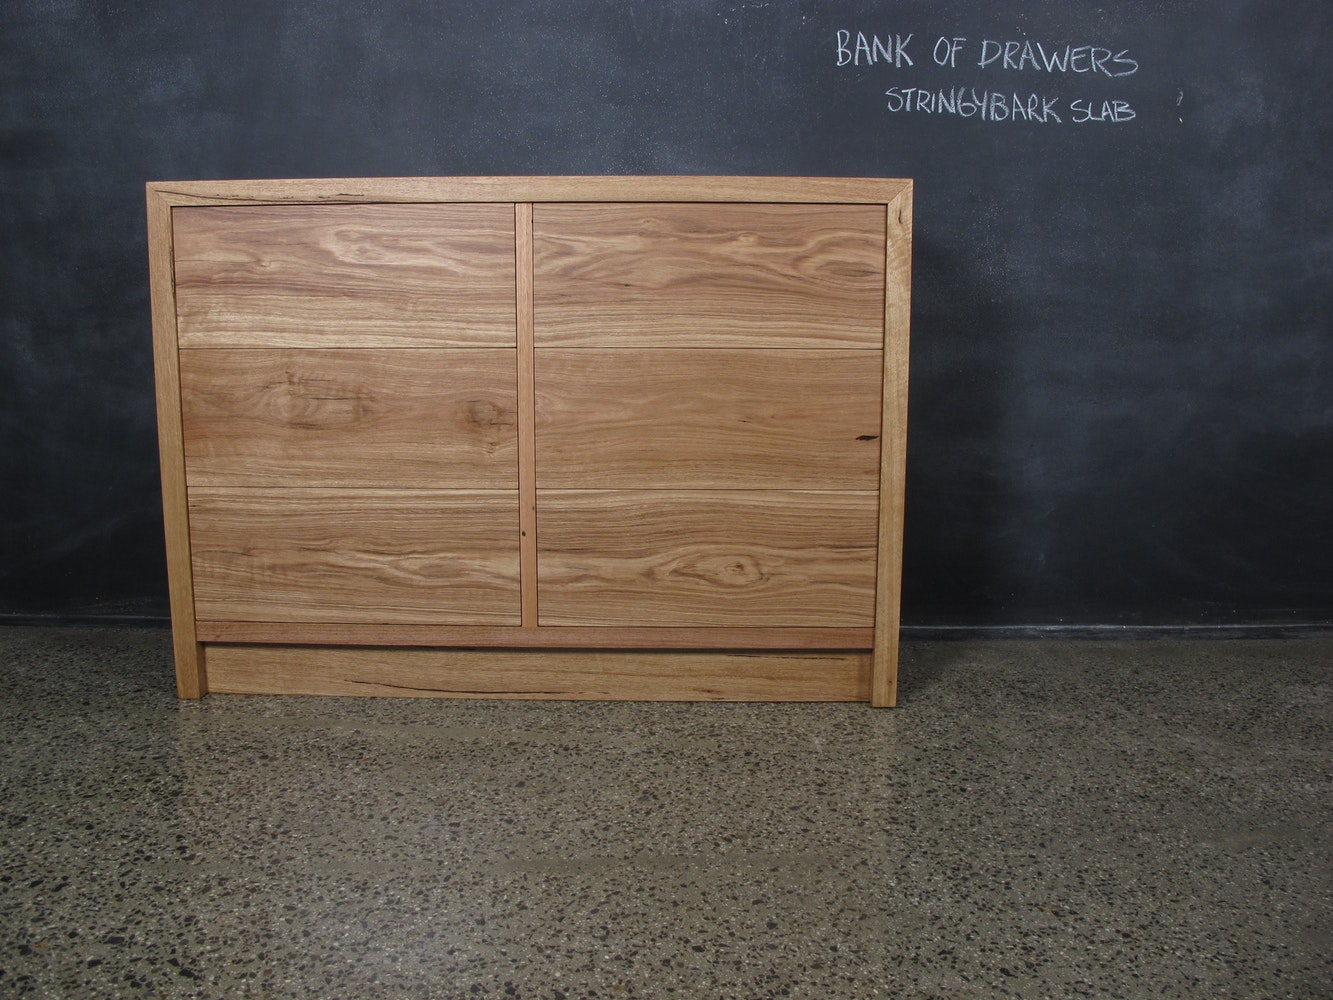 Christian cole furniture stringybark bank of drawers custom drawers dressers for sale in Display home furniture auction melbourne